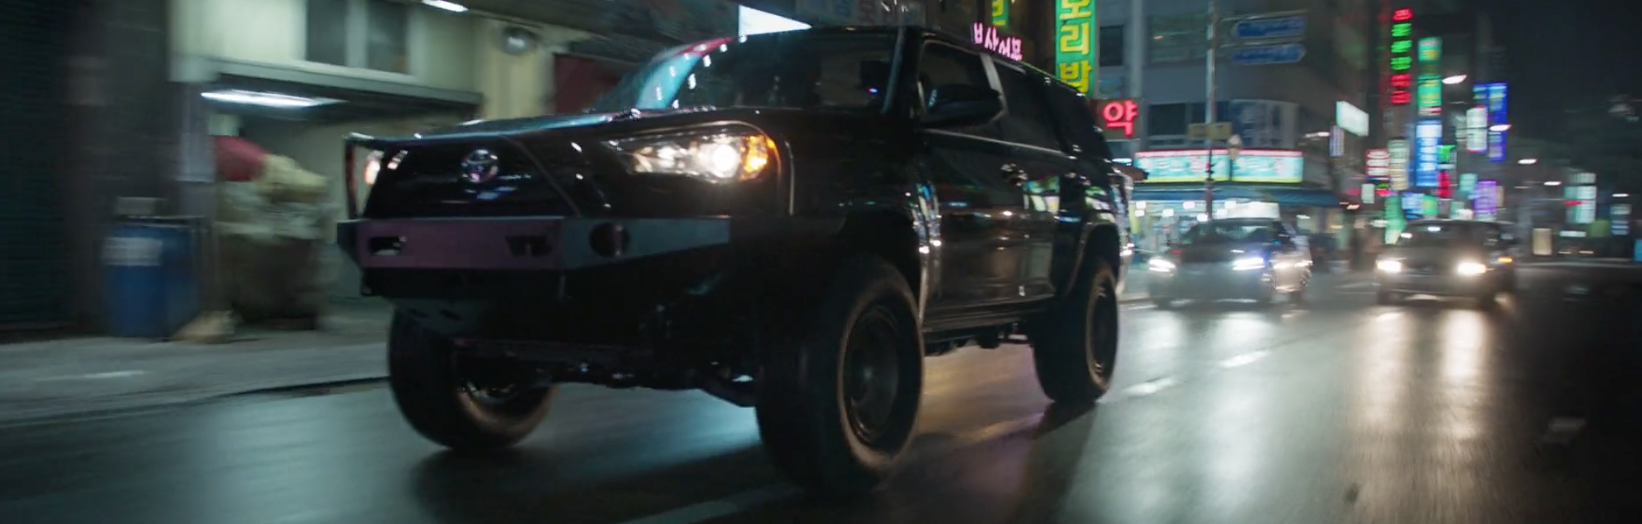 Toyota product placement in Marvel's Black panther